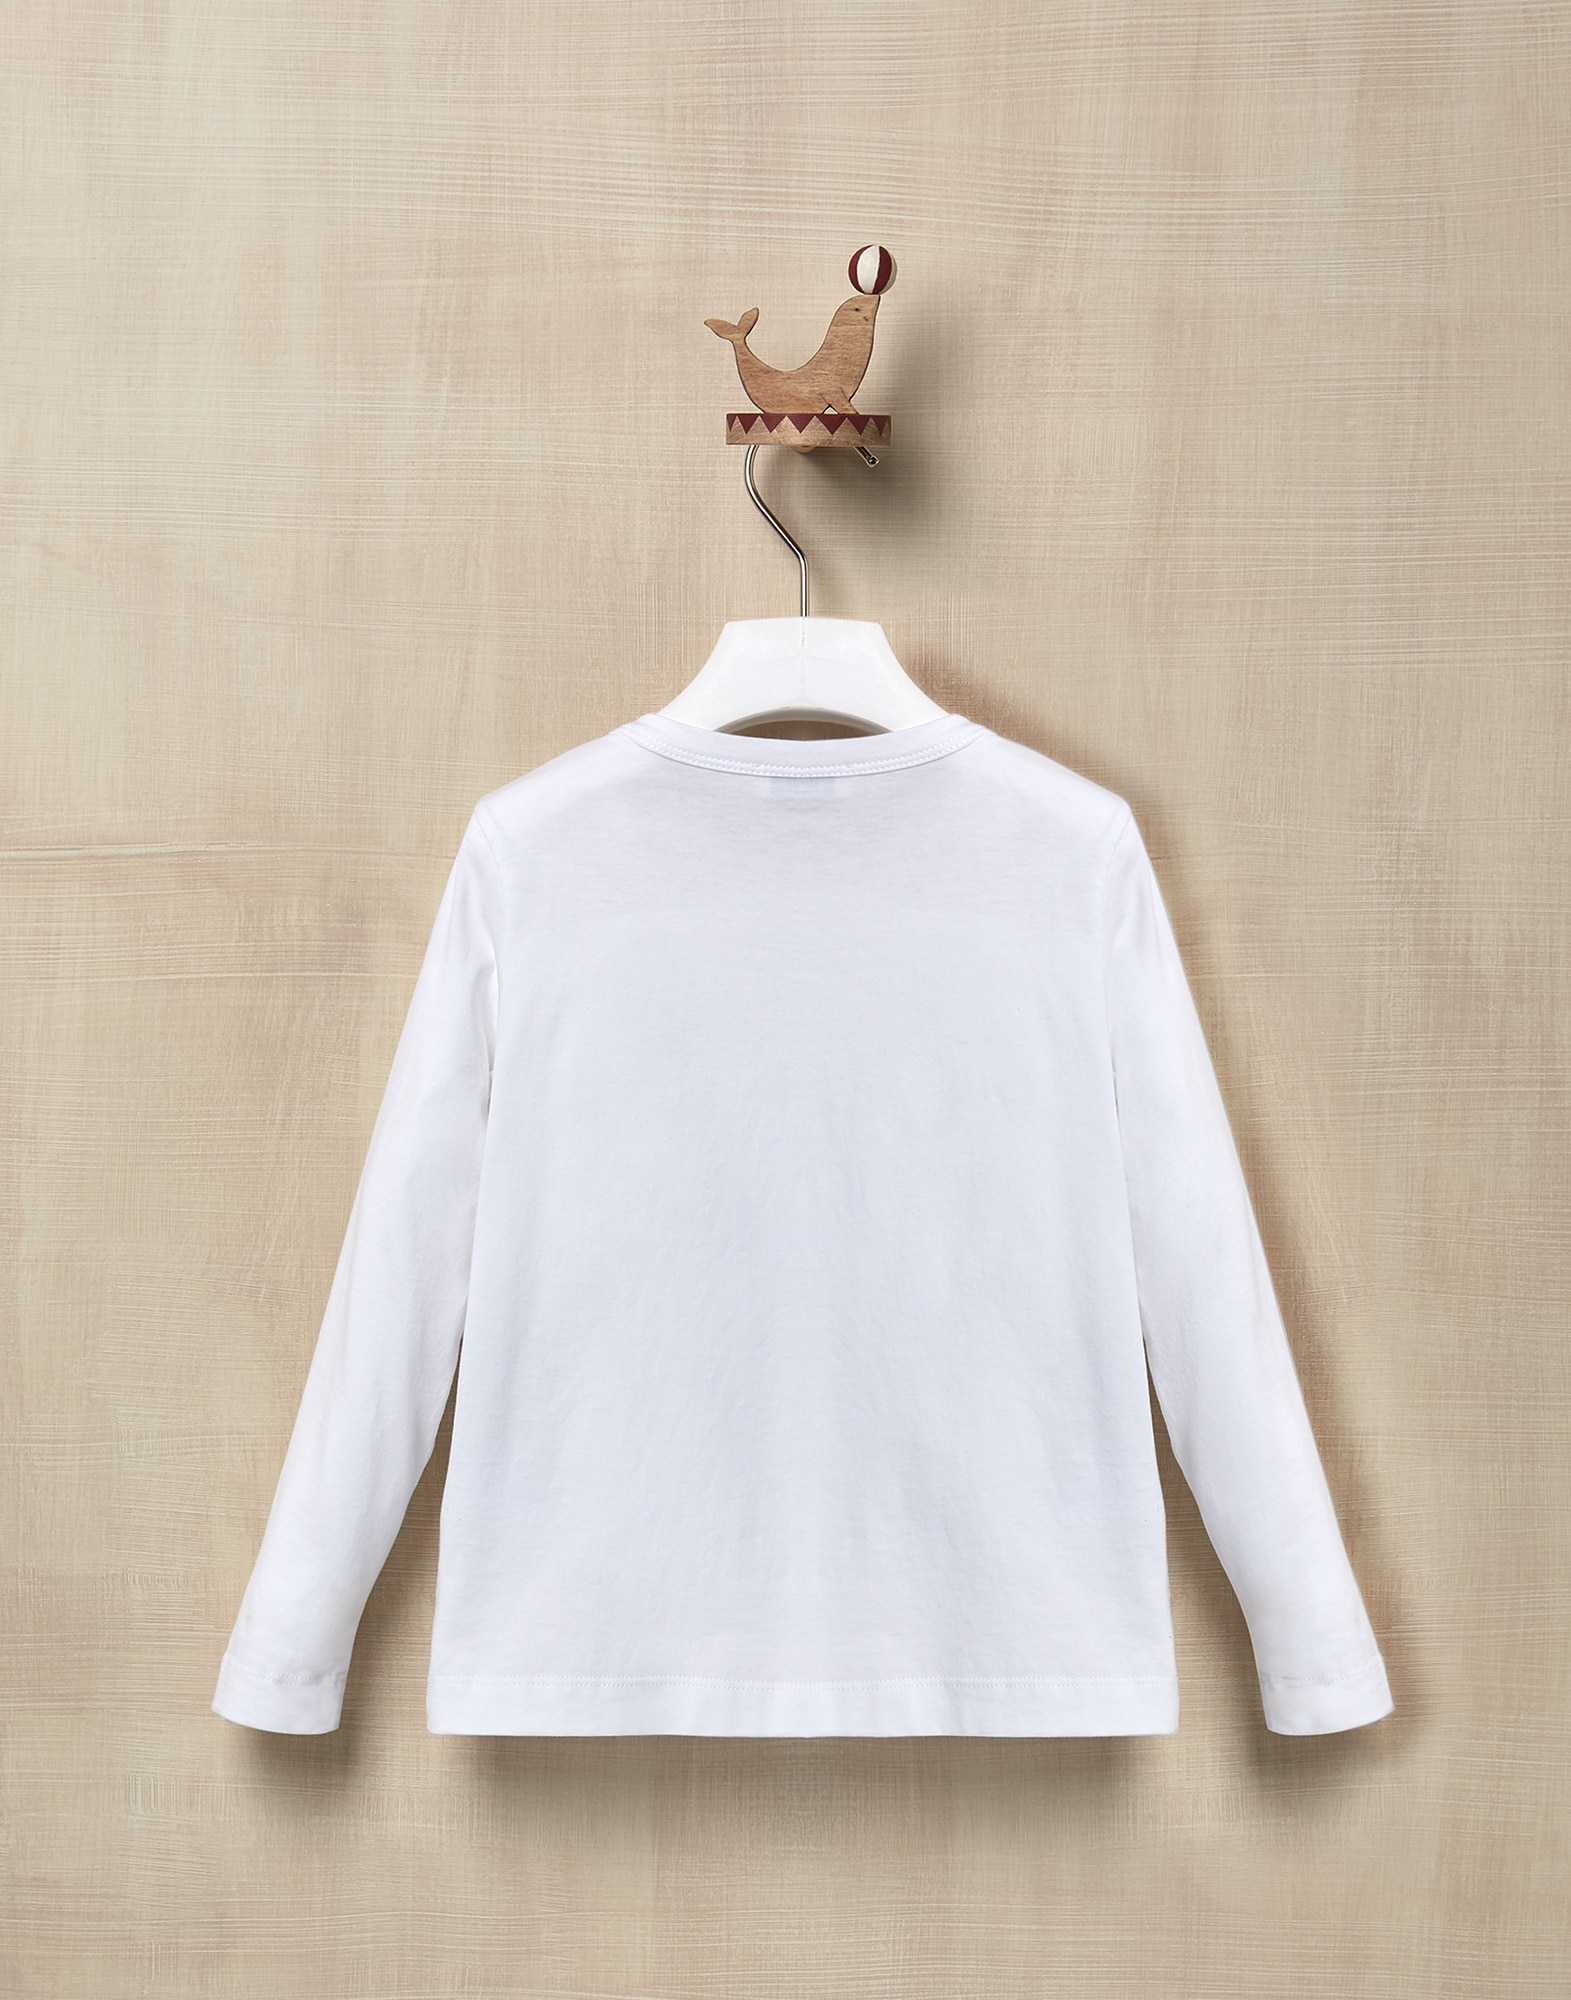 T-Shirt White Girl 2 - Brunello Cucinelli